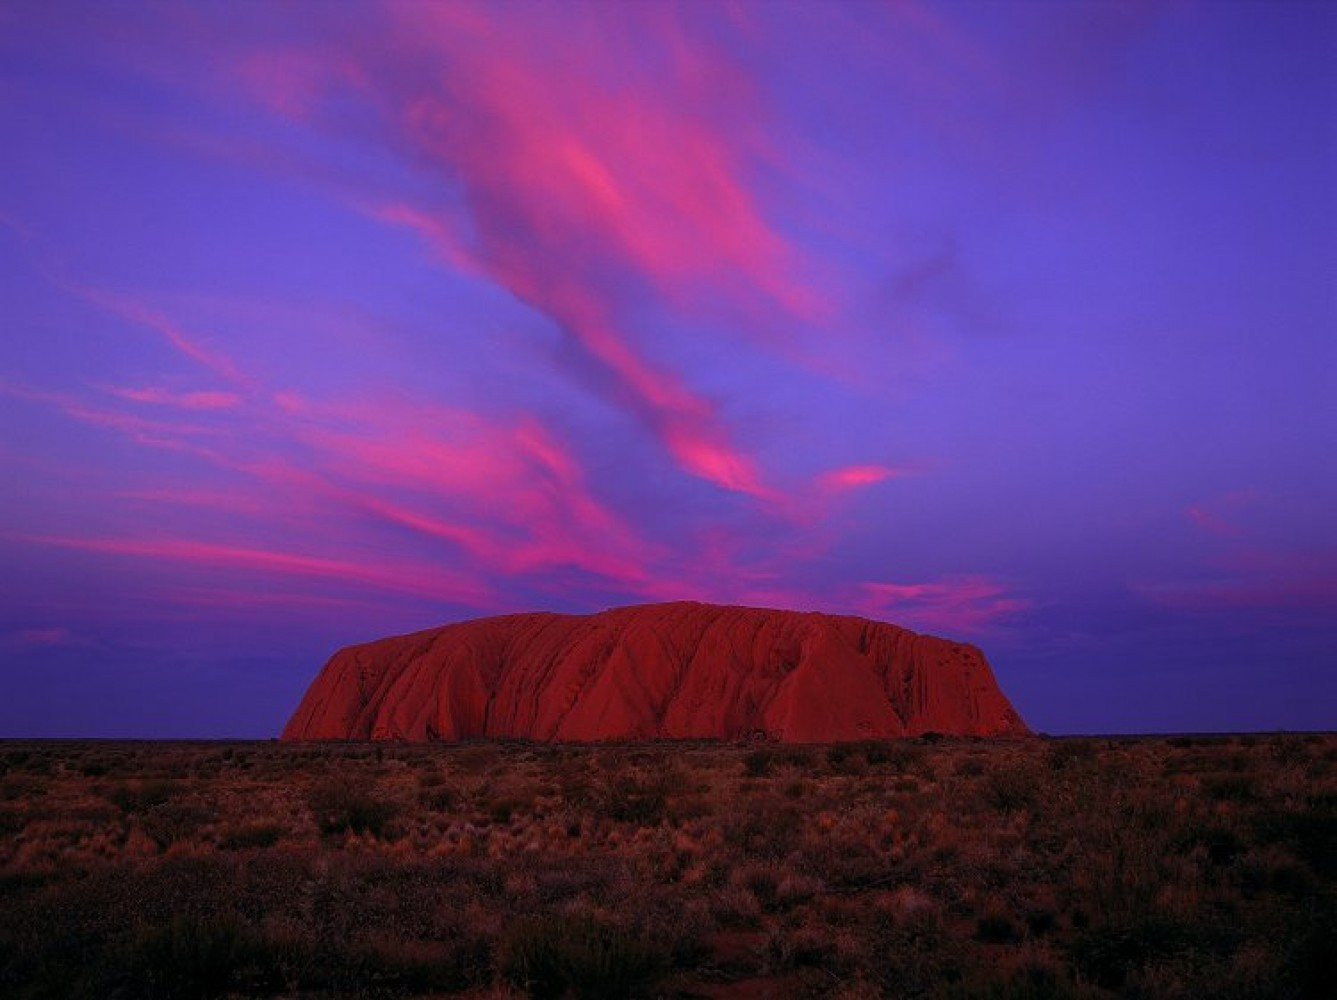 Uluru Sunset (Ayers Rock) Australia